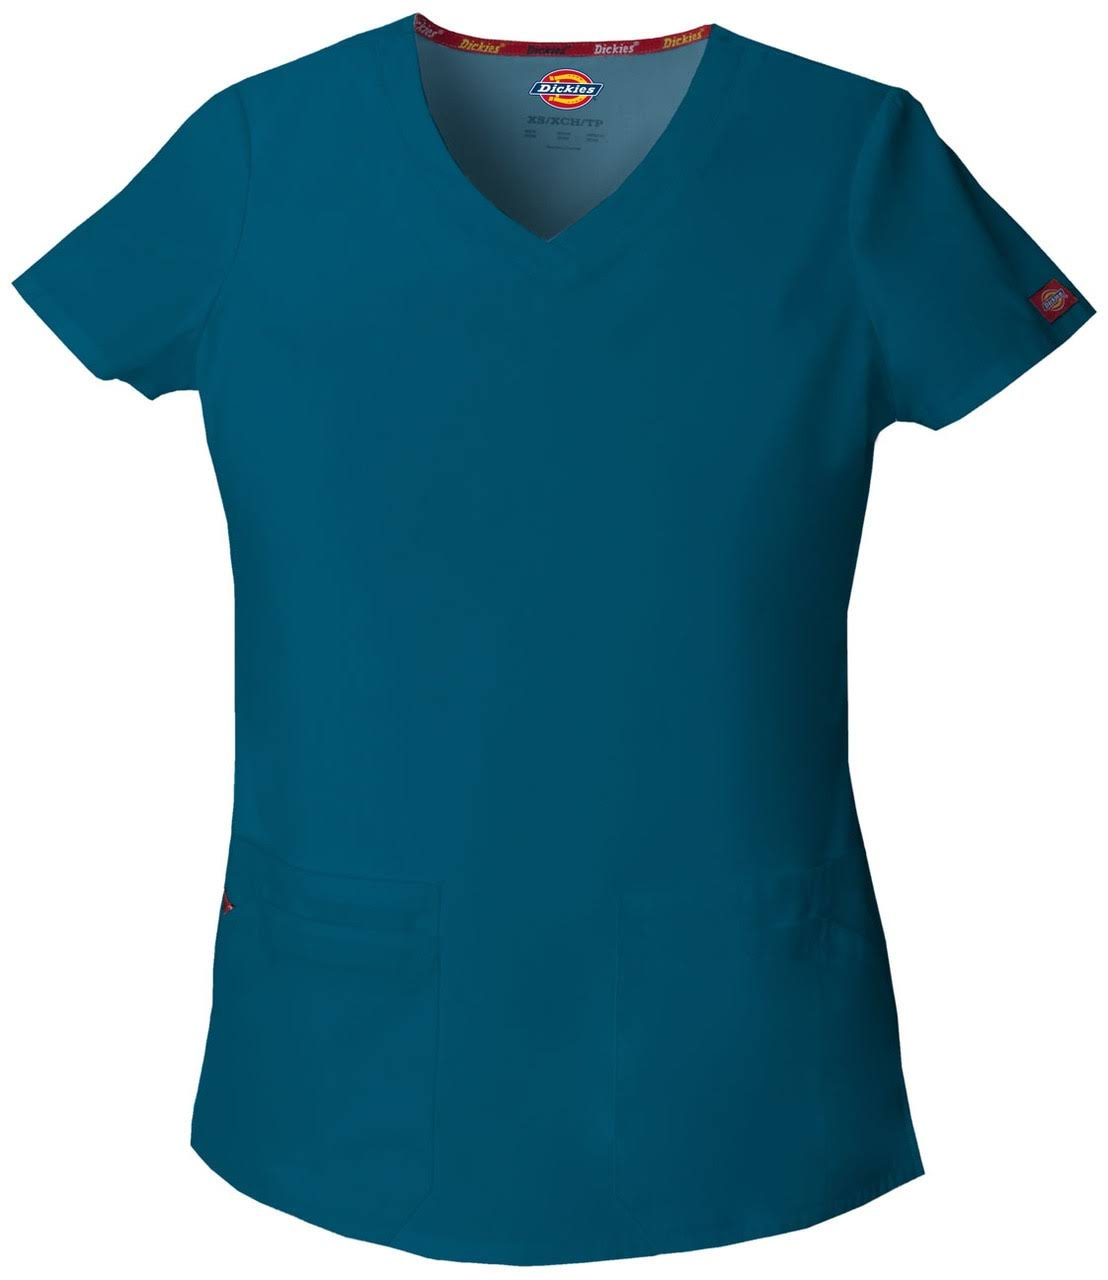 Dickies Women's Signature V Neck Scrub Top - Caribbean Blue, XX-Large